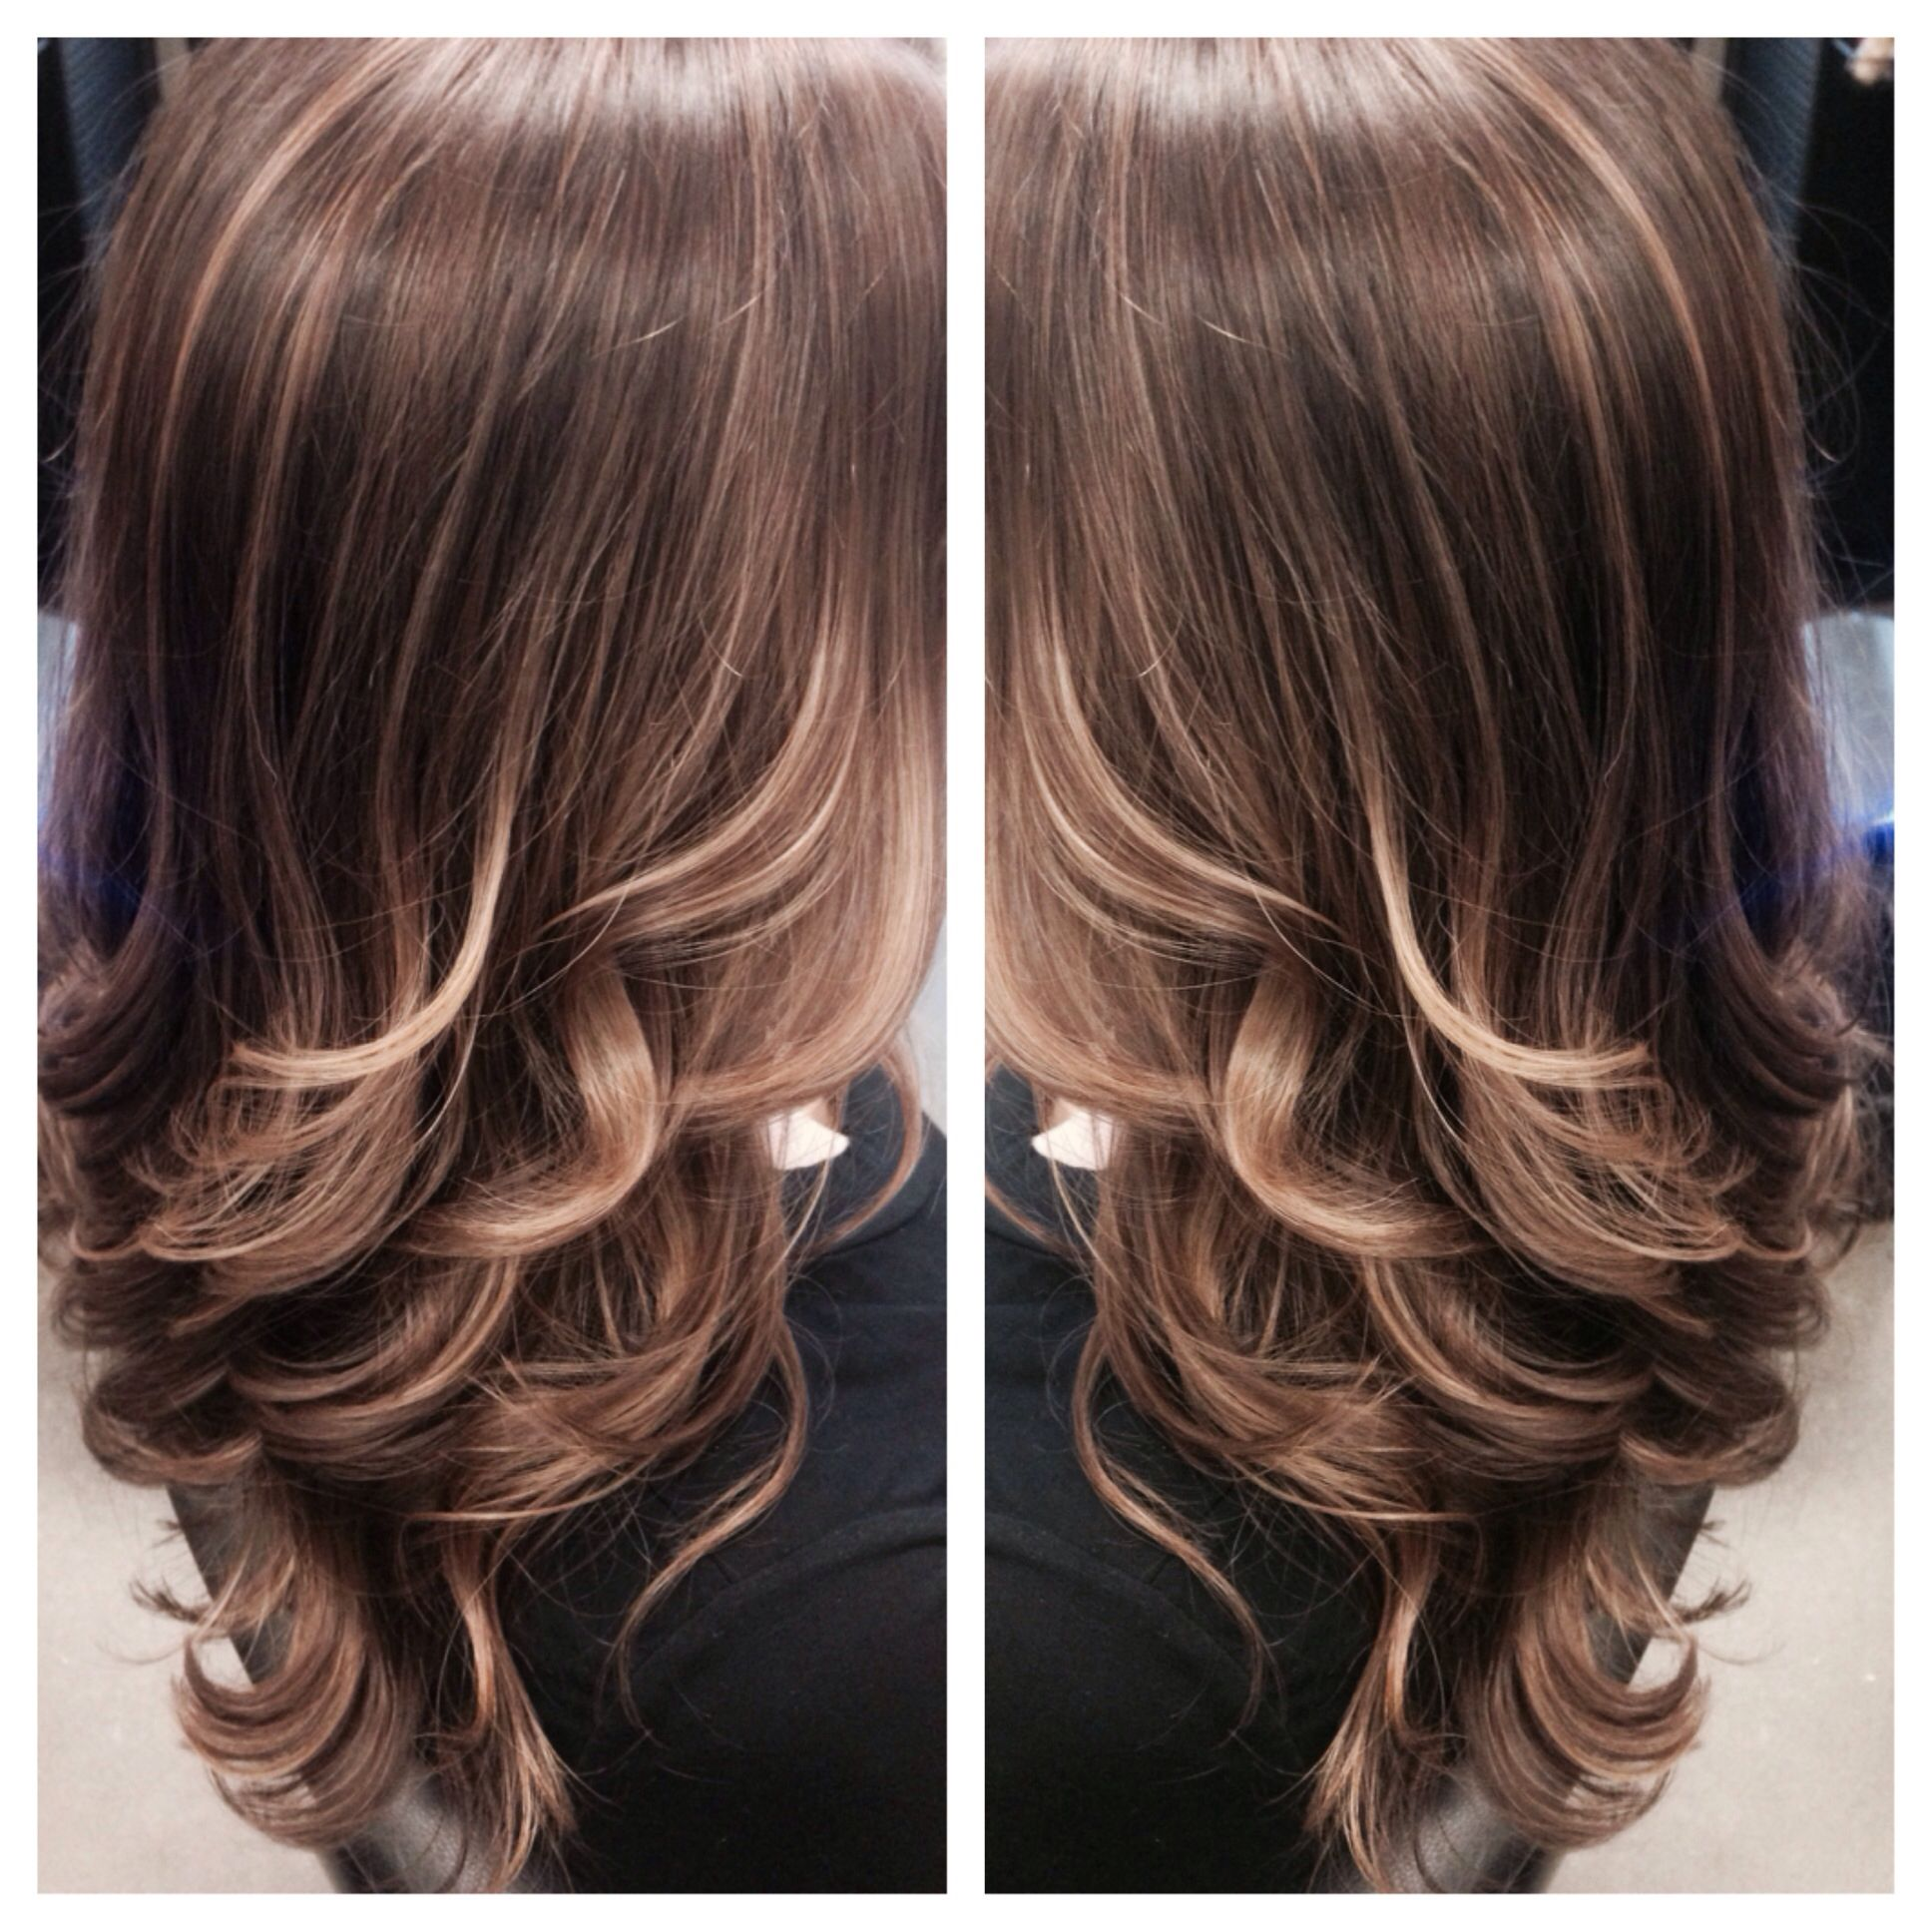 Mill Creek Town Center: Subtle Highlights Created By Balayage For A Soft And